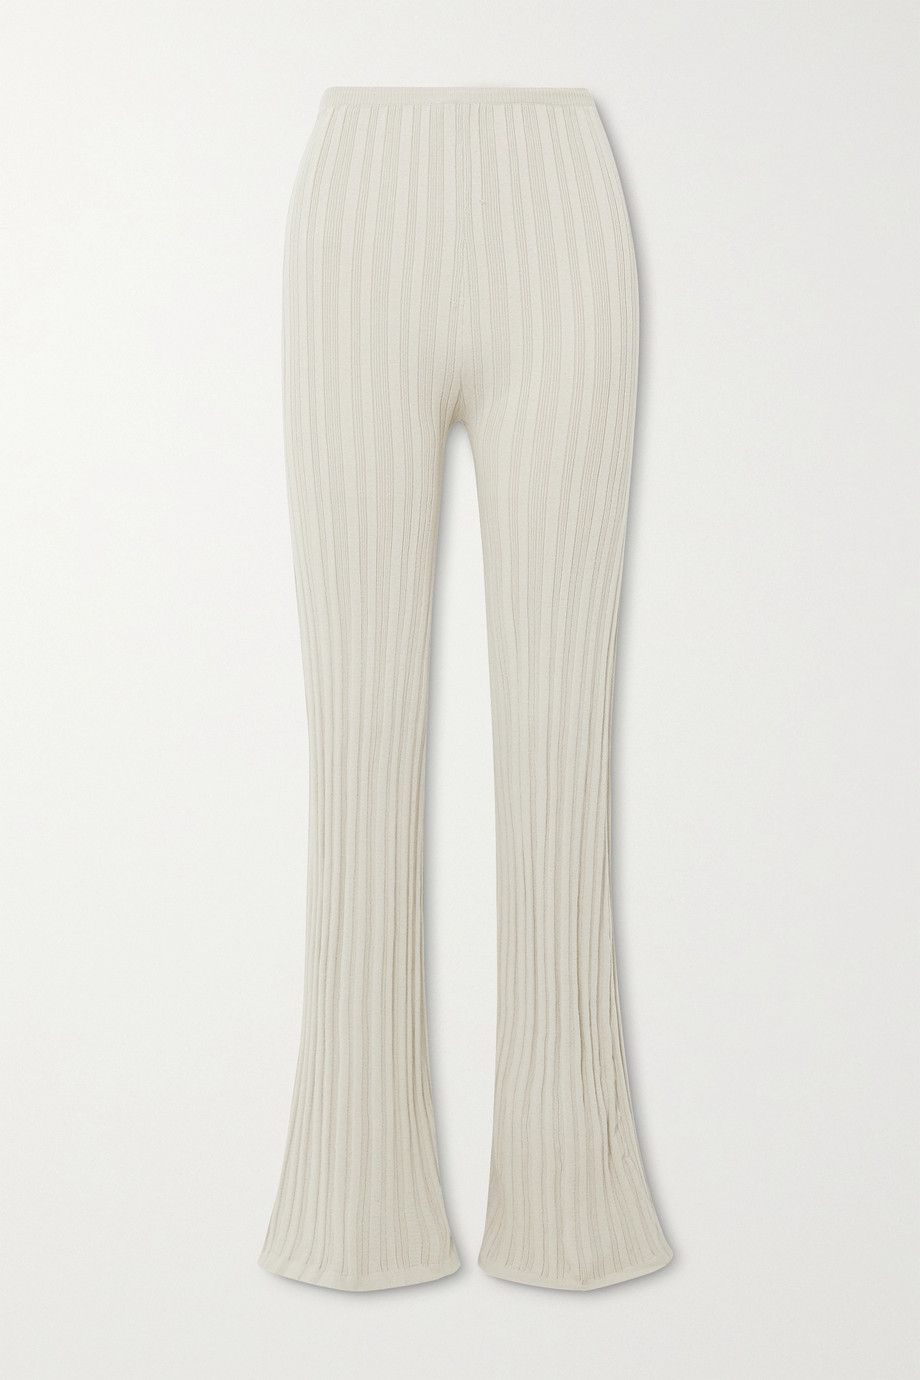 the-line-by-k-daisy-ribbed-knit-flared-pants